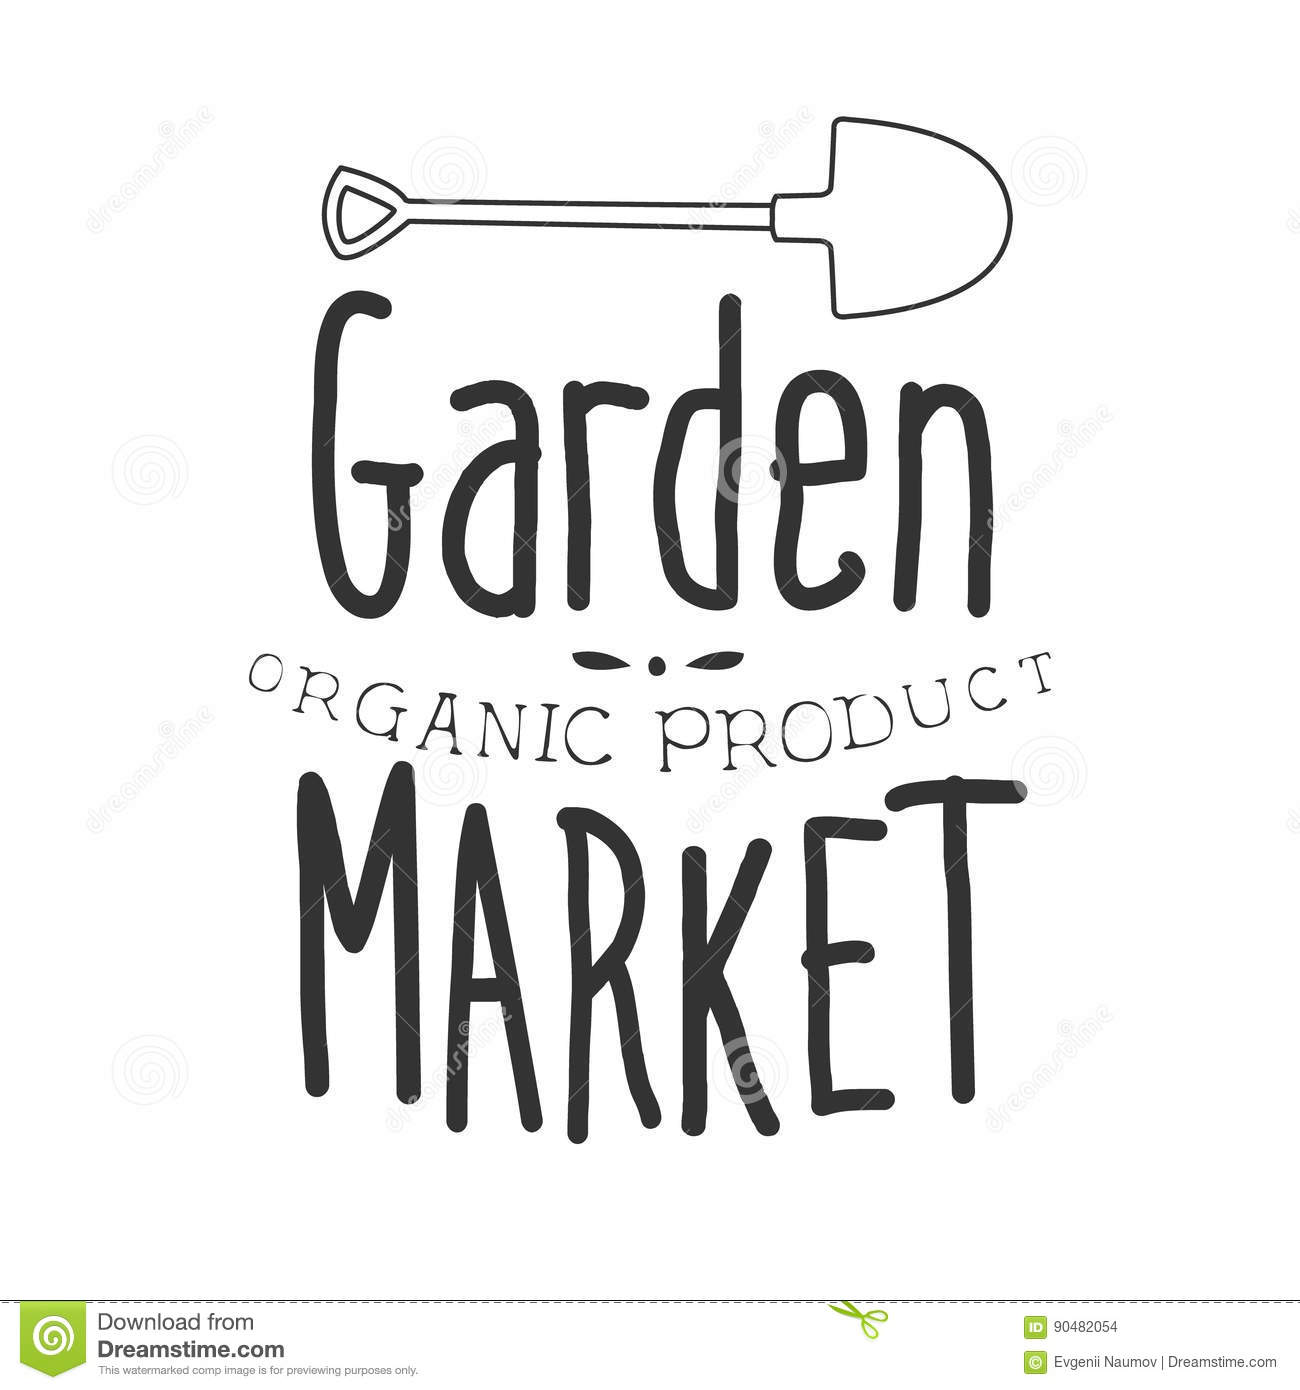 Garden Organic Product Market Black And White Promo Sign Design Template With Calligraphic Text